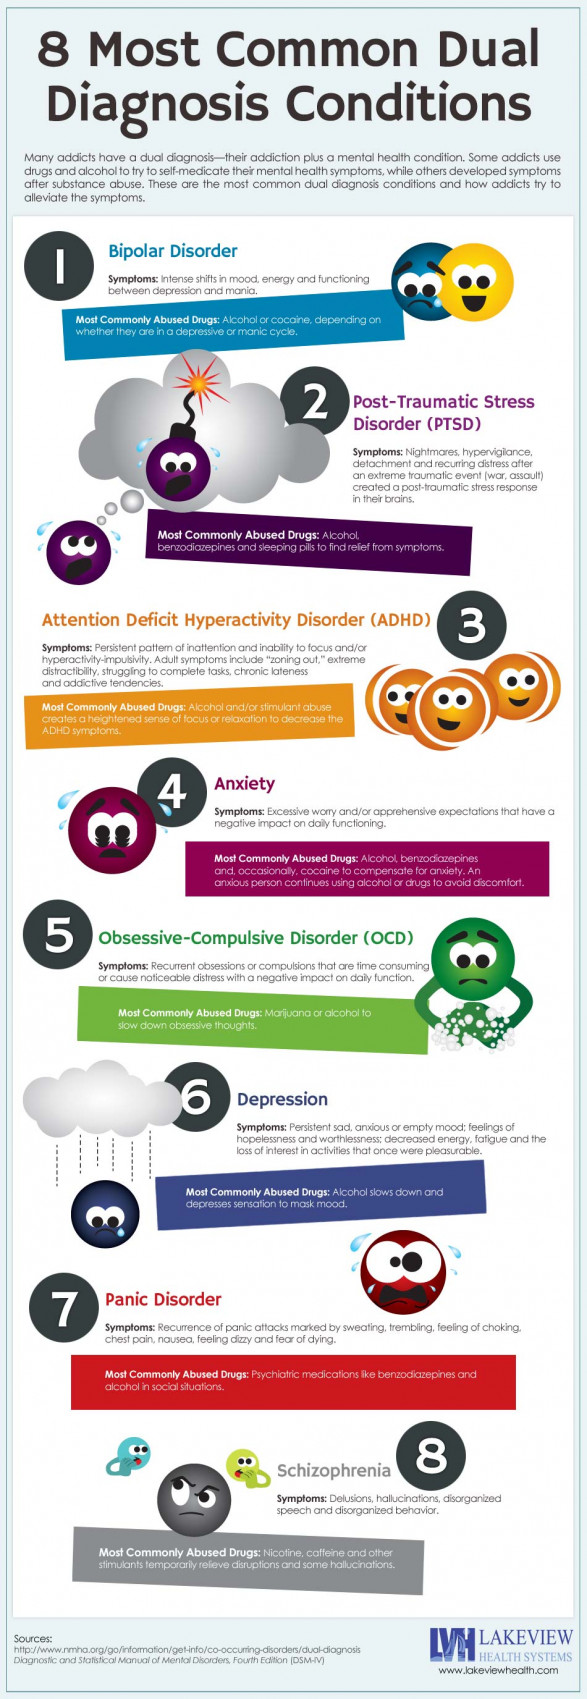 8 Most Common Dual Diagnosis Conditions